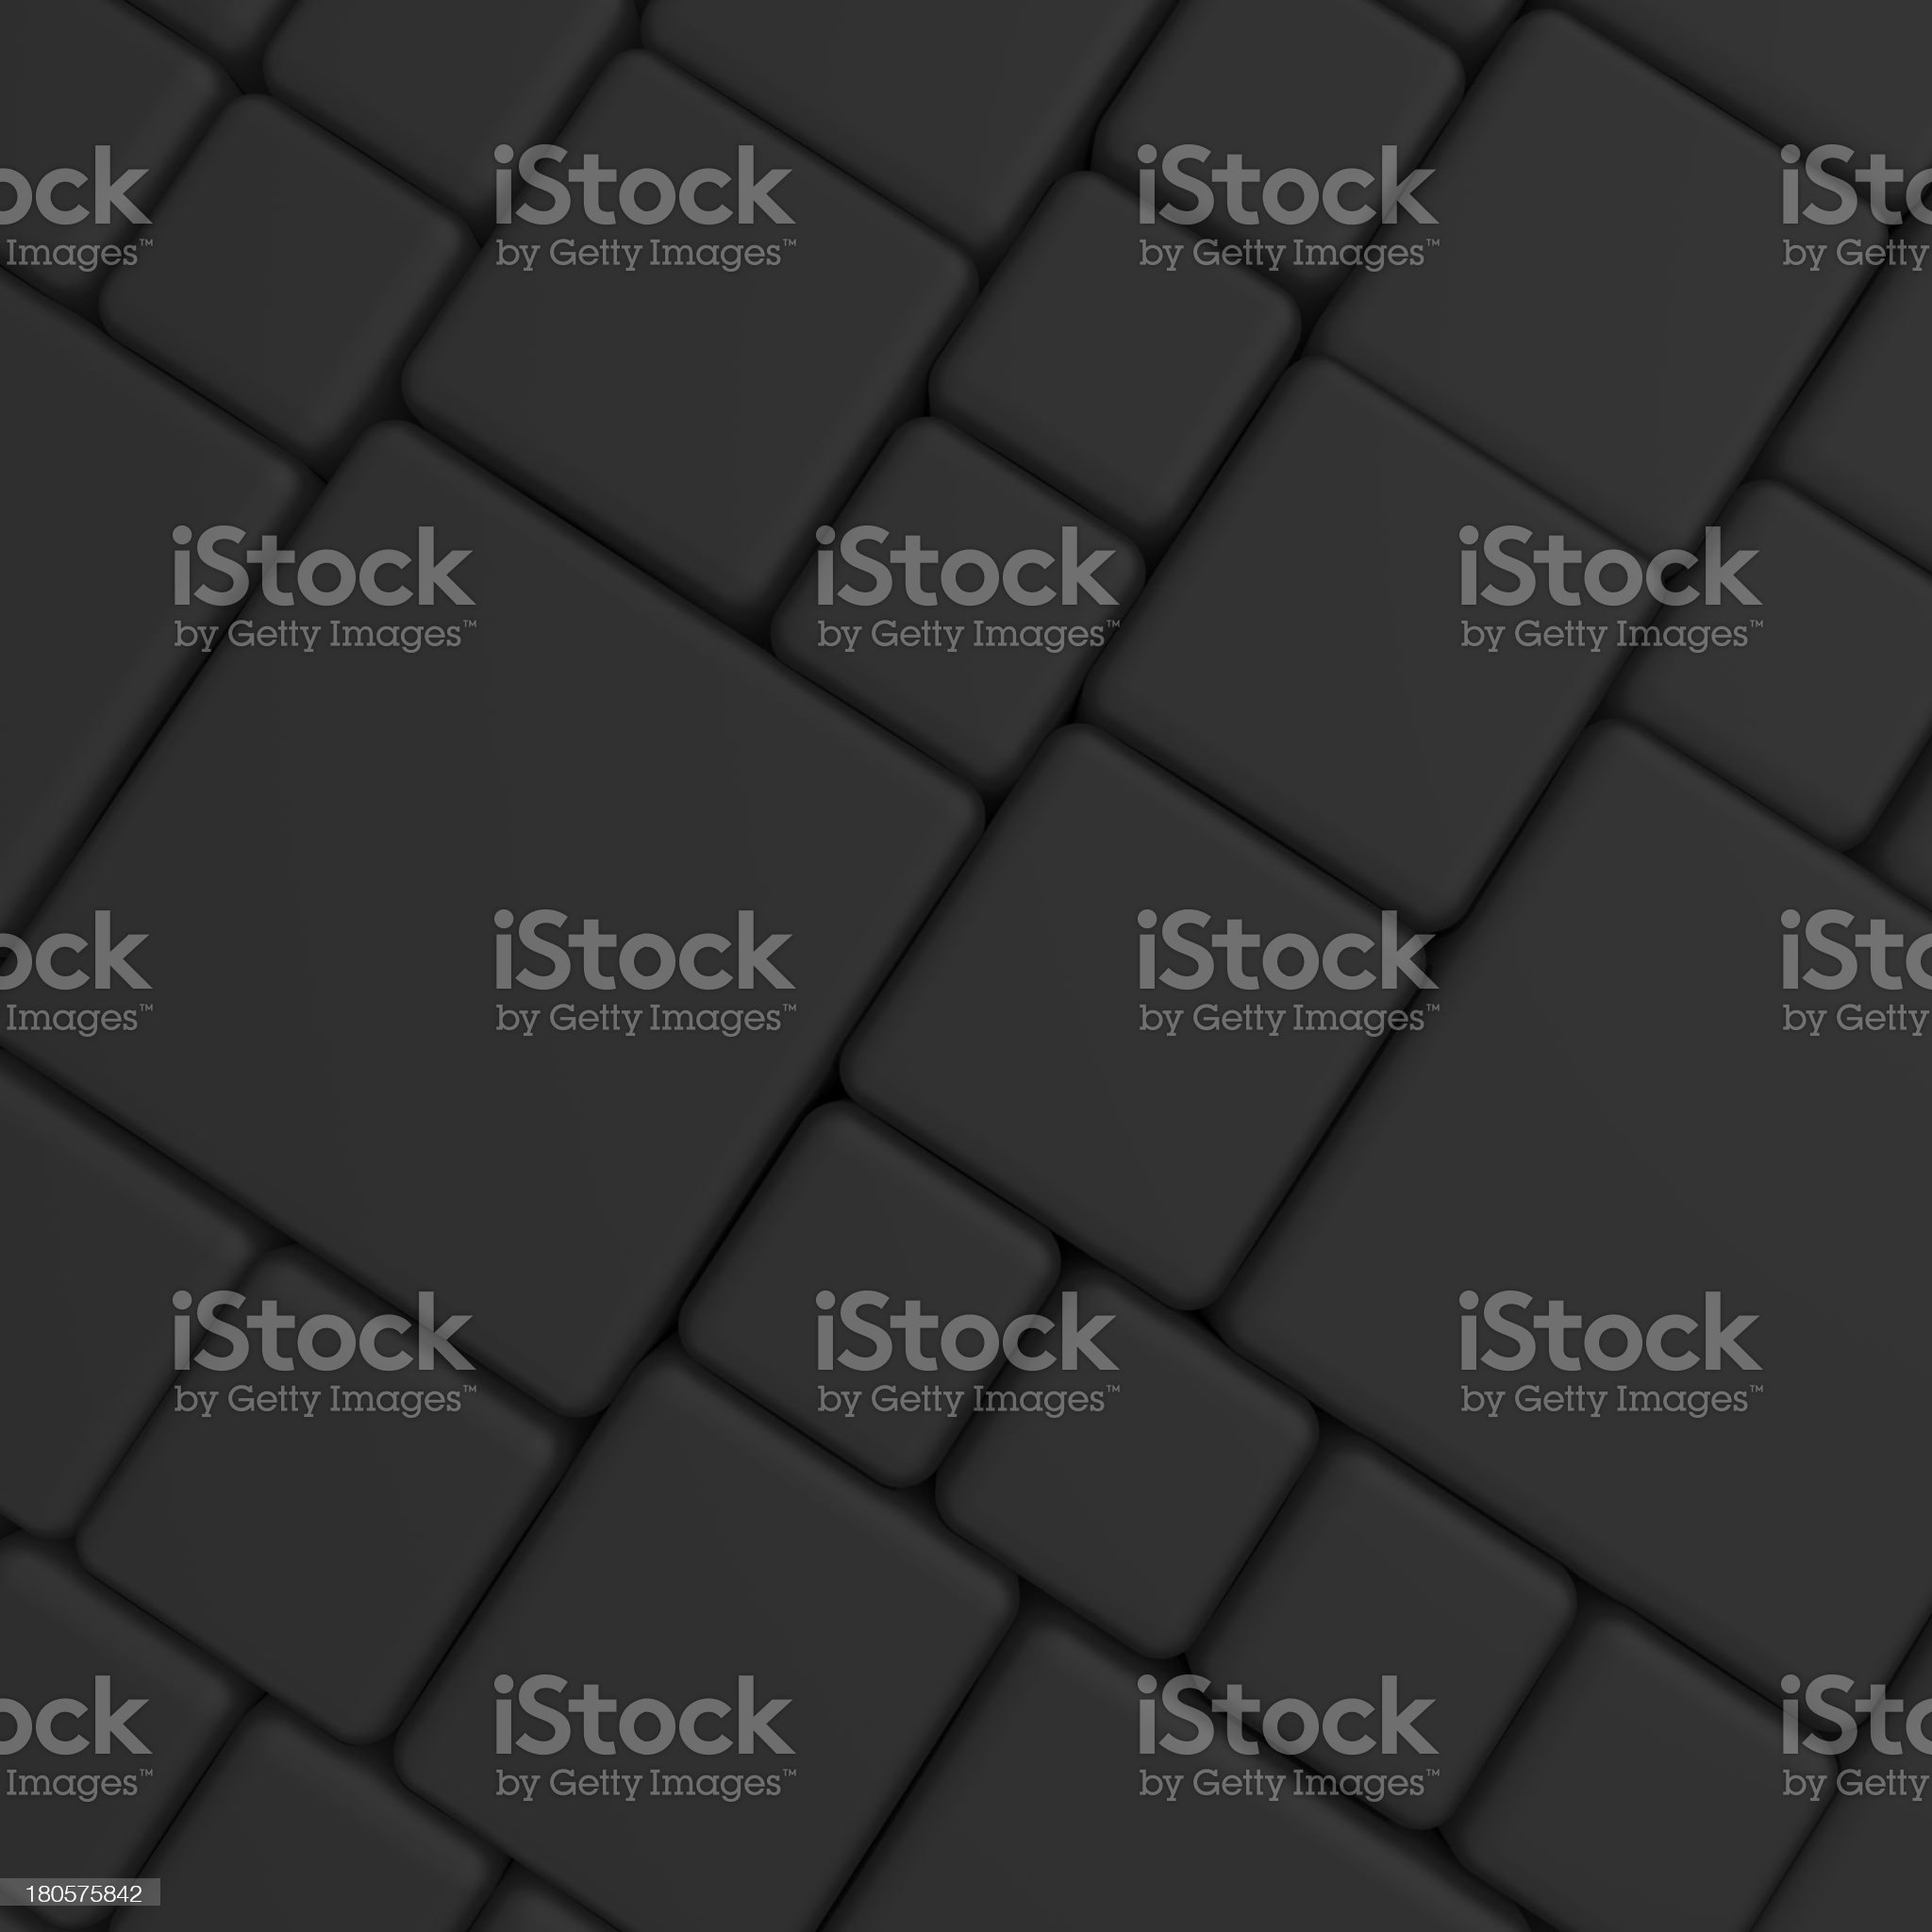 cube rubber background royalty-free stock photo